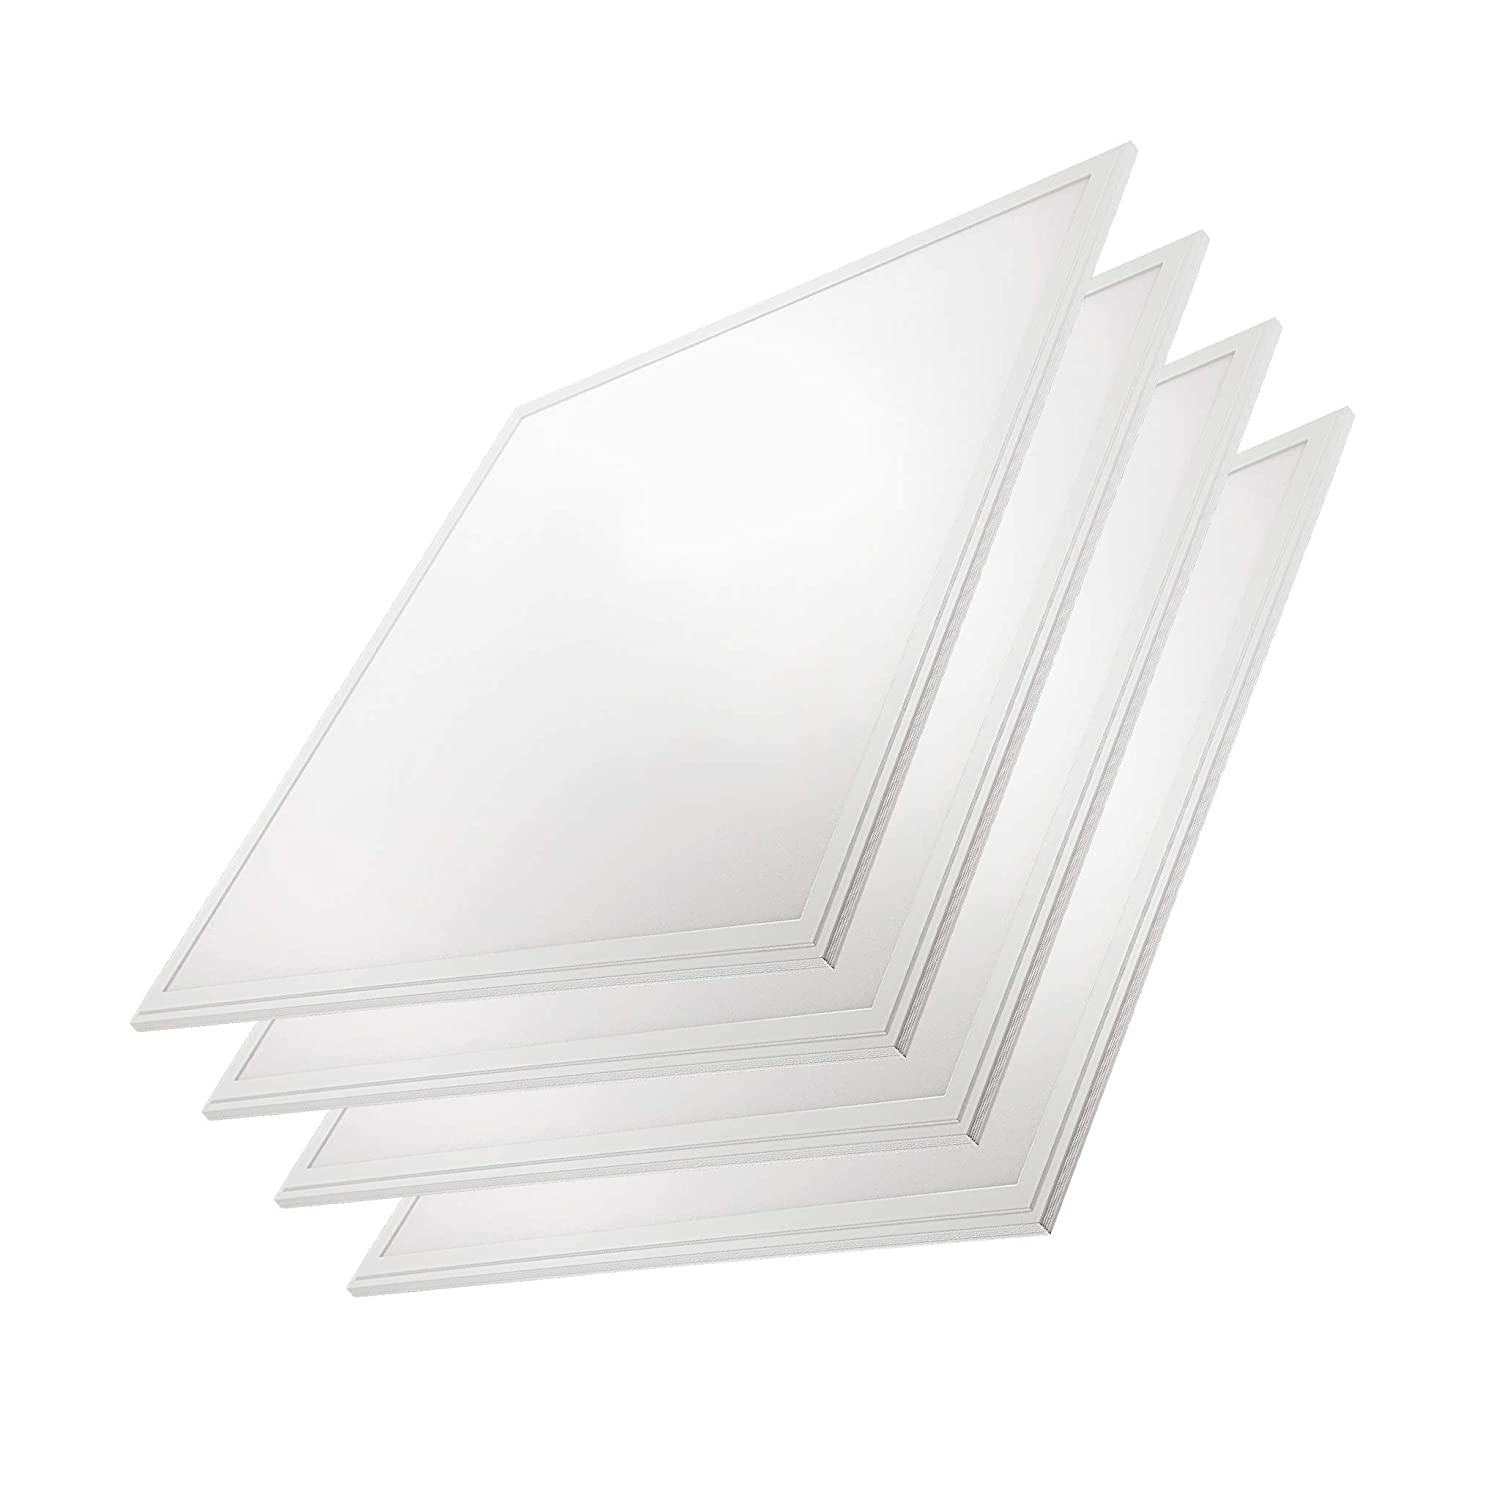 "2x2 Panel/Troffer Edge-Lit Panel (4 Pack) 10 YR Warranty; 24"" x 24"" 40W; 4,600 Lumens= 115lm/w 120V-277V; 0-10V Dimmable; UL/DLC Listed; Soft White 3000K"